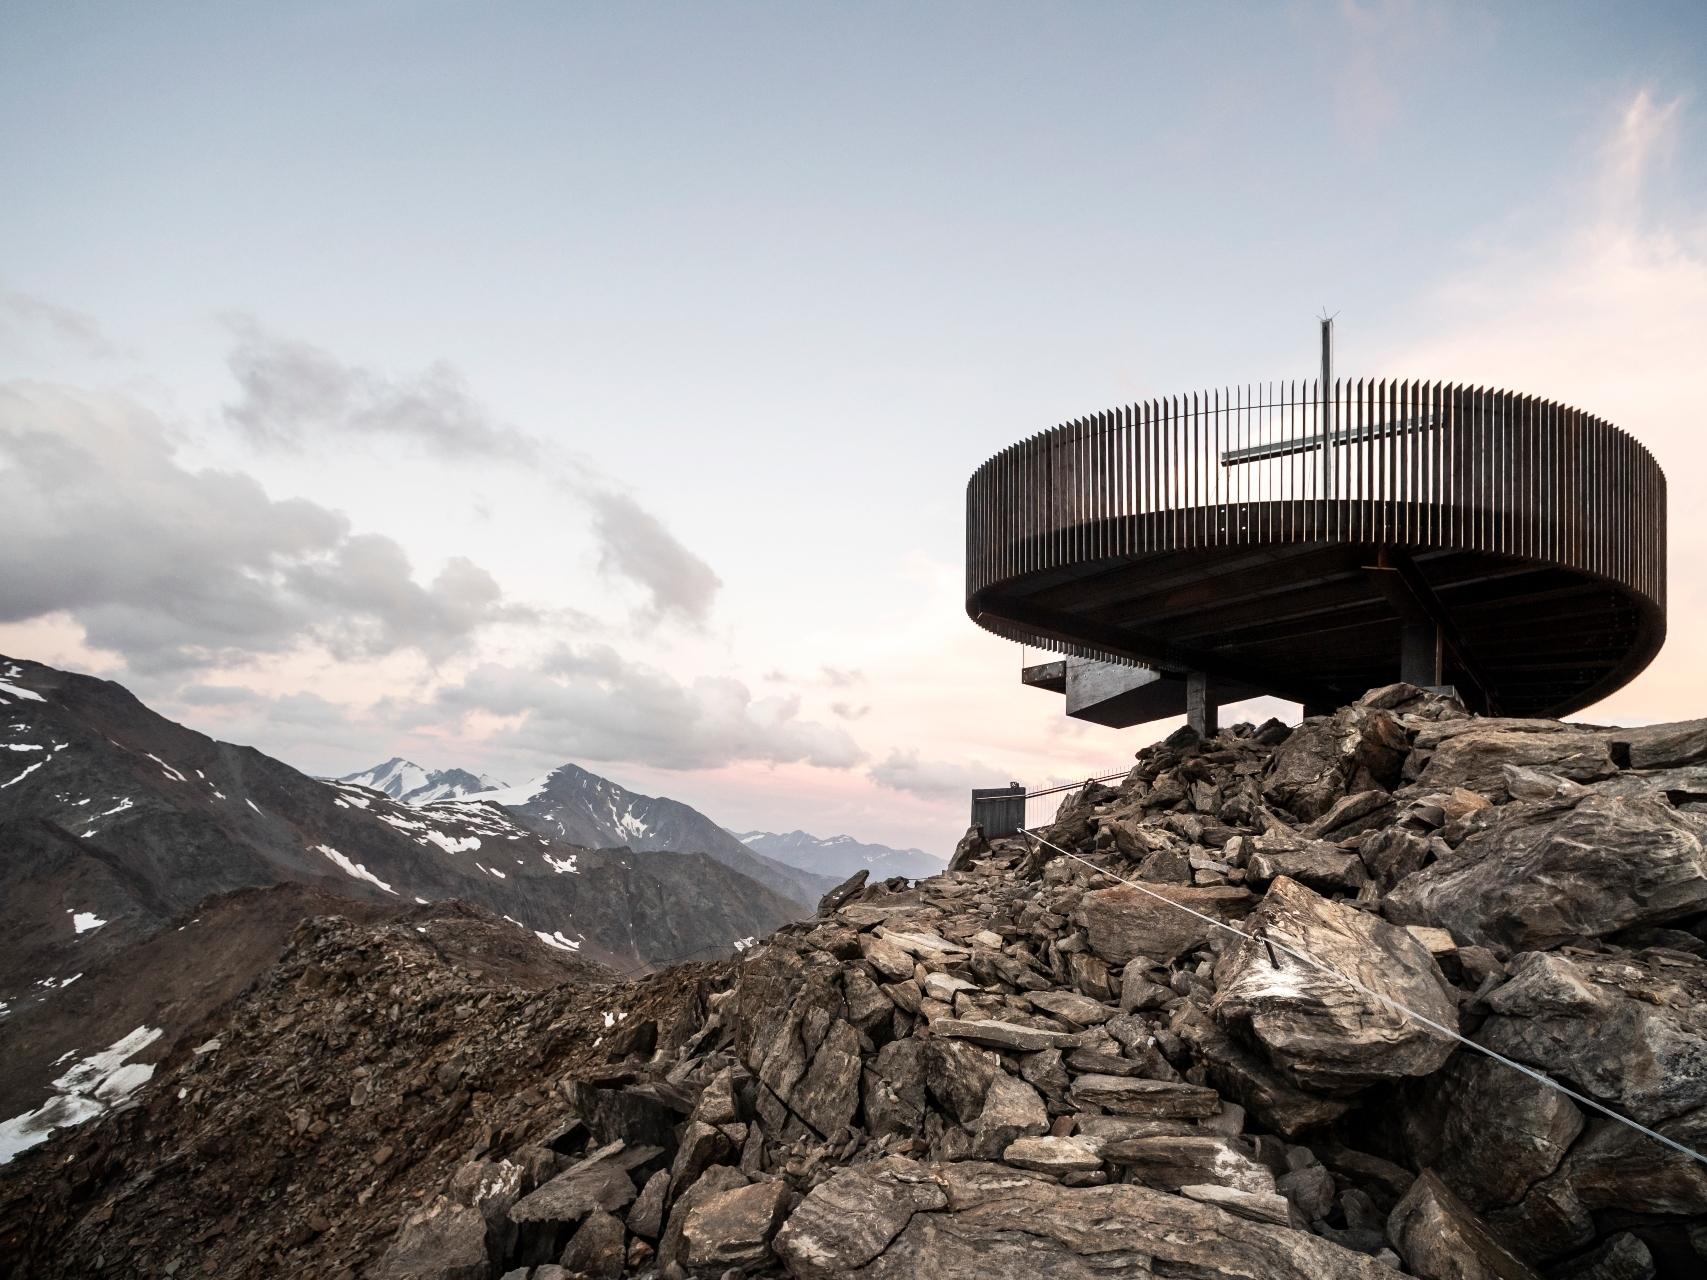 This futuristic new observation deck offers spectacular views over the Italian Alps